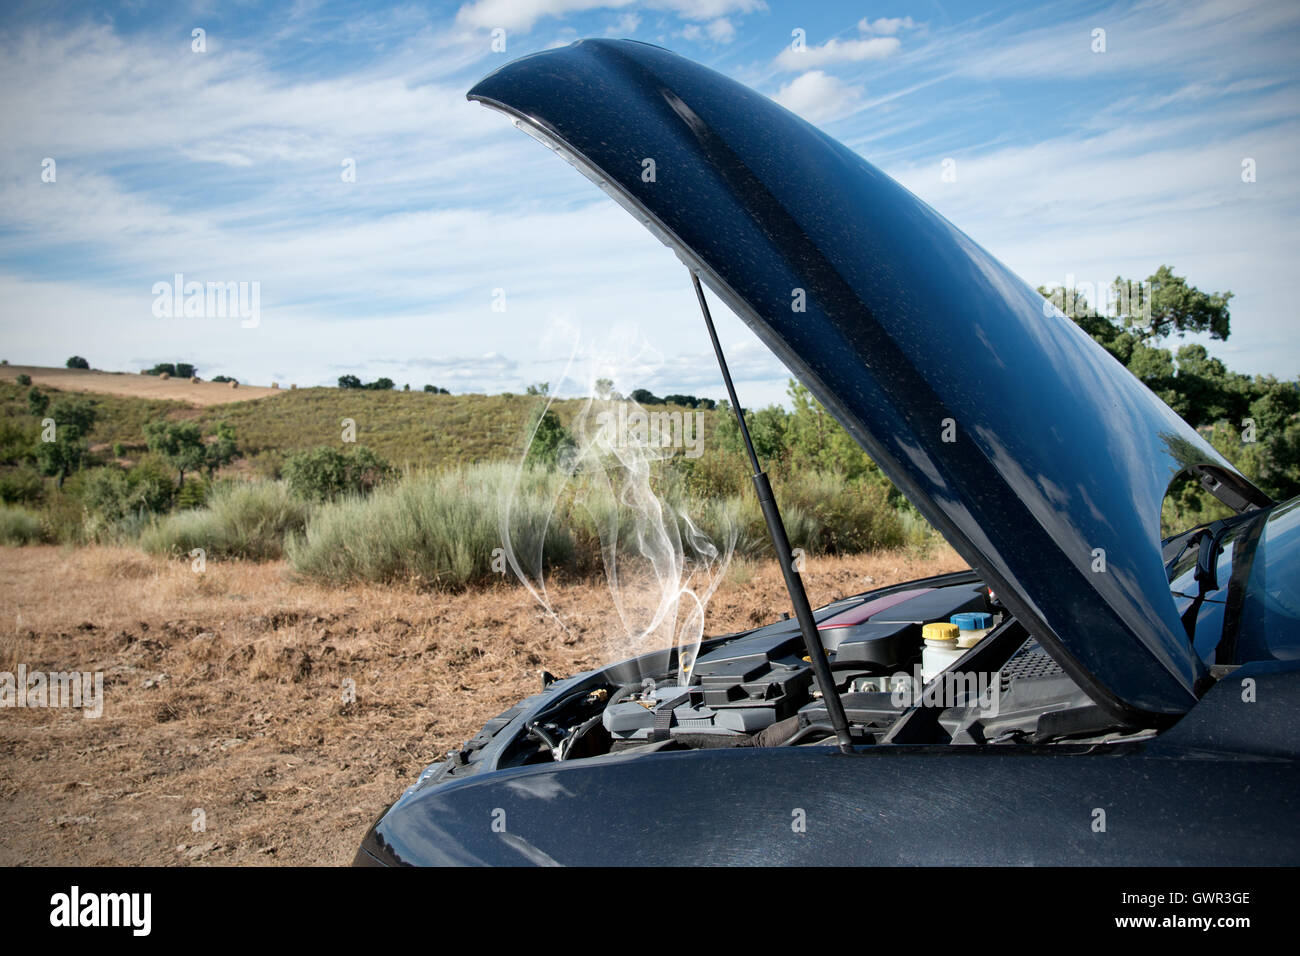 Close up of a broken down car, engine open with smoke, in a rural area - Stock Image